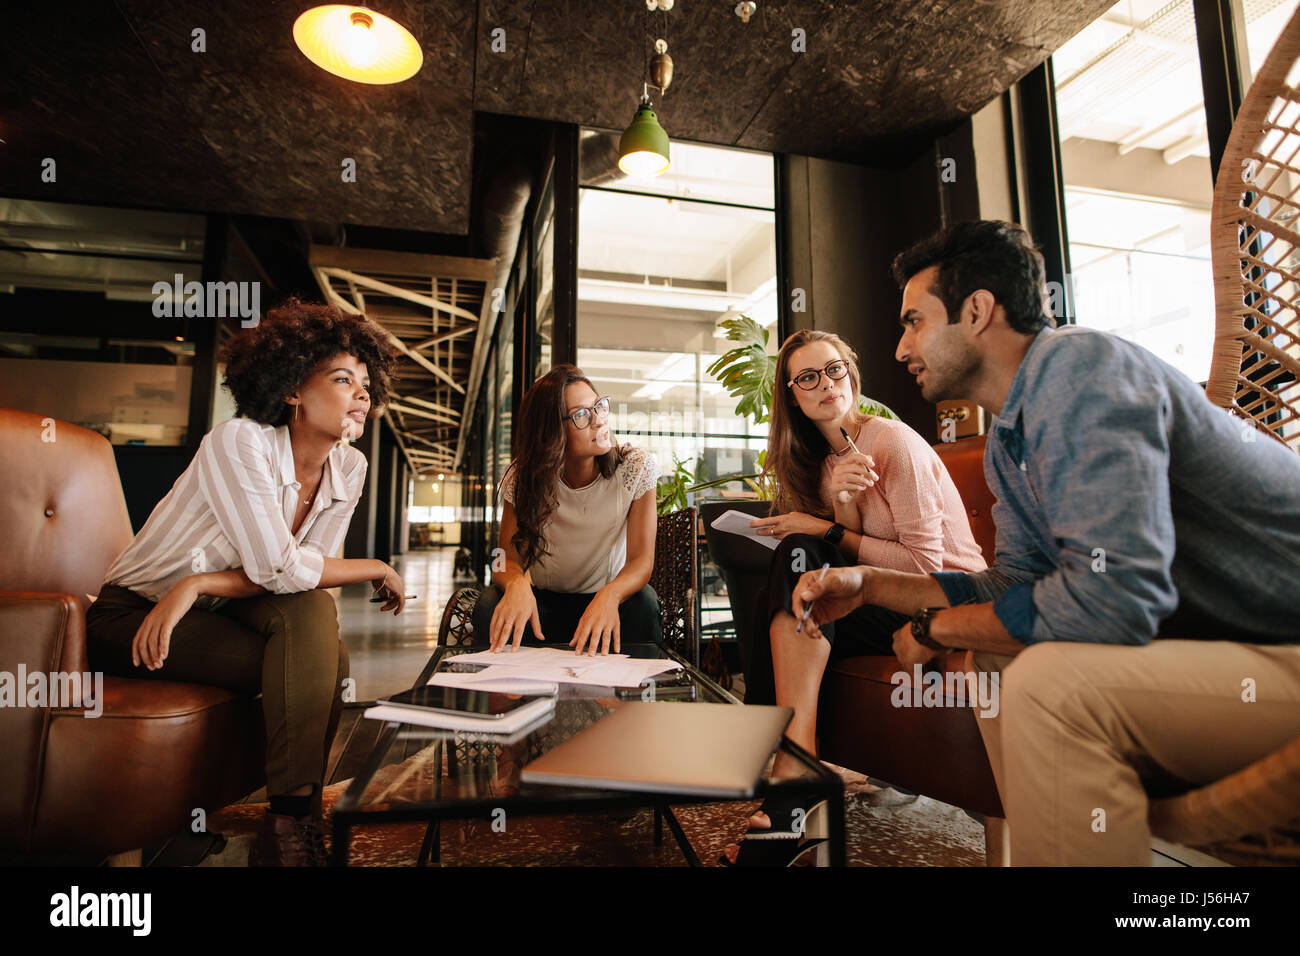 Group of creative people having a meeting in a modern office. Business people having conversation over new project. - Stock Image